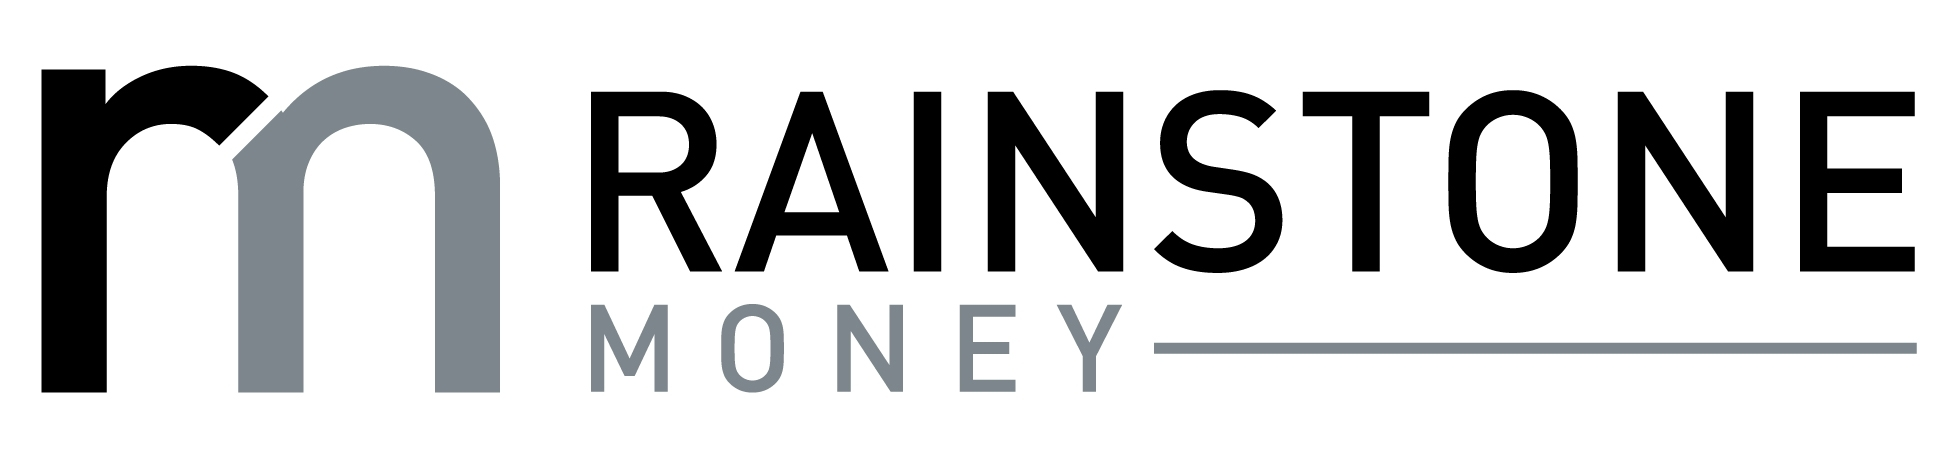 Rainstone Financial Services Limited